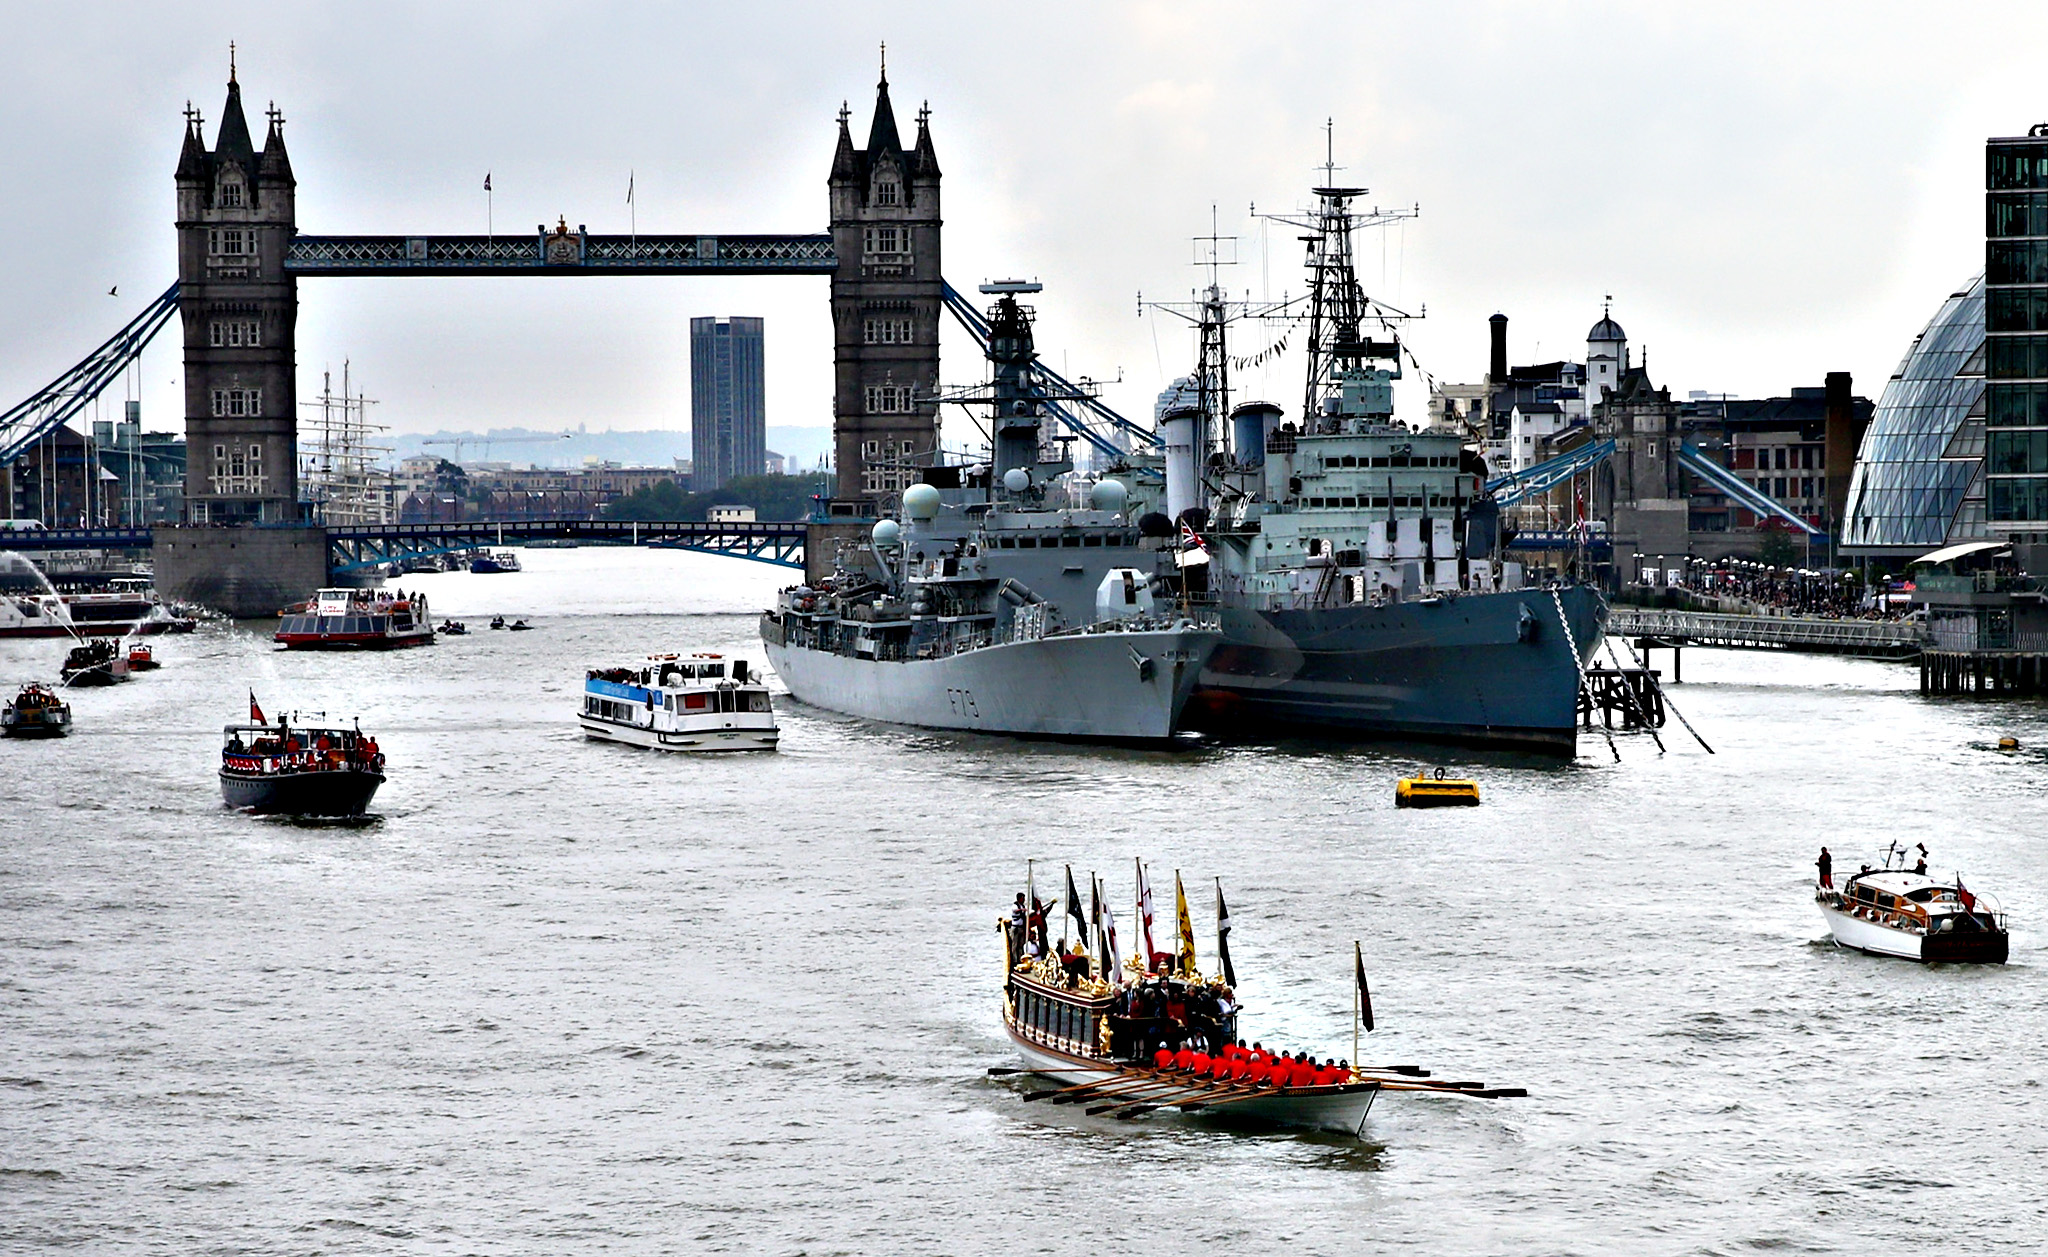 The Royal Barge Gloriana leads a procession along the River Thames near Tower Bridge and HMS Belfast to pay tribute to Queen Elizabeth II becoming Britain's longest reigning monarch on September 9, 2015 in London, England. The Queen will have served for 63 years and seven months - 23,226 days - by around 5.30pm today surpassing her great-grandmother Queen Victoria to become Britain's longest ever reigning monarch